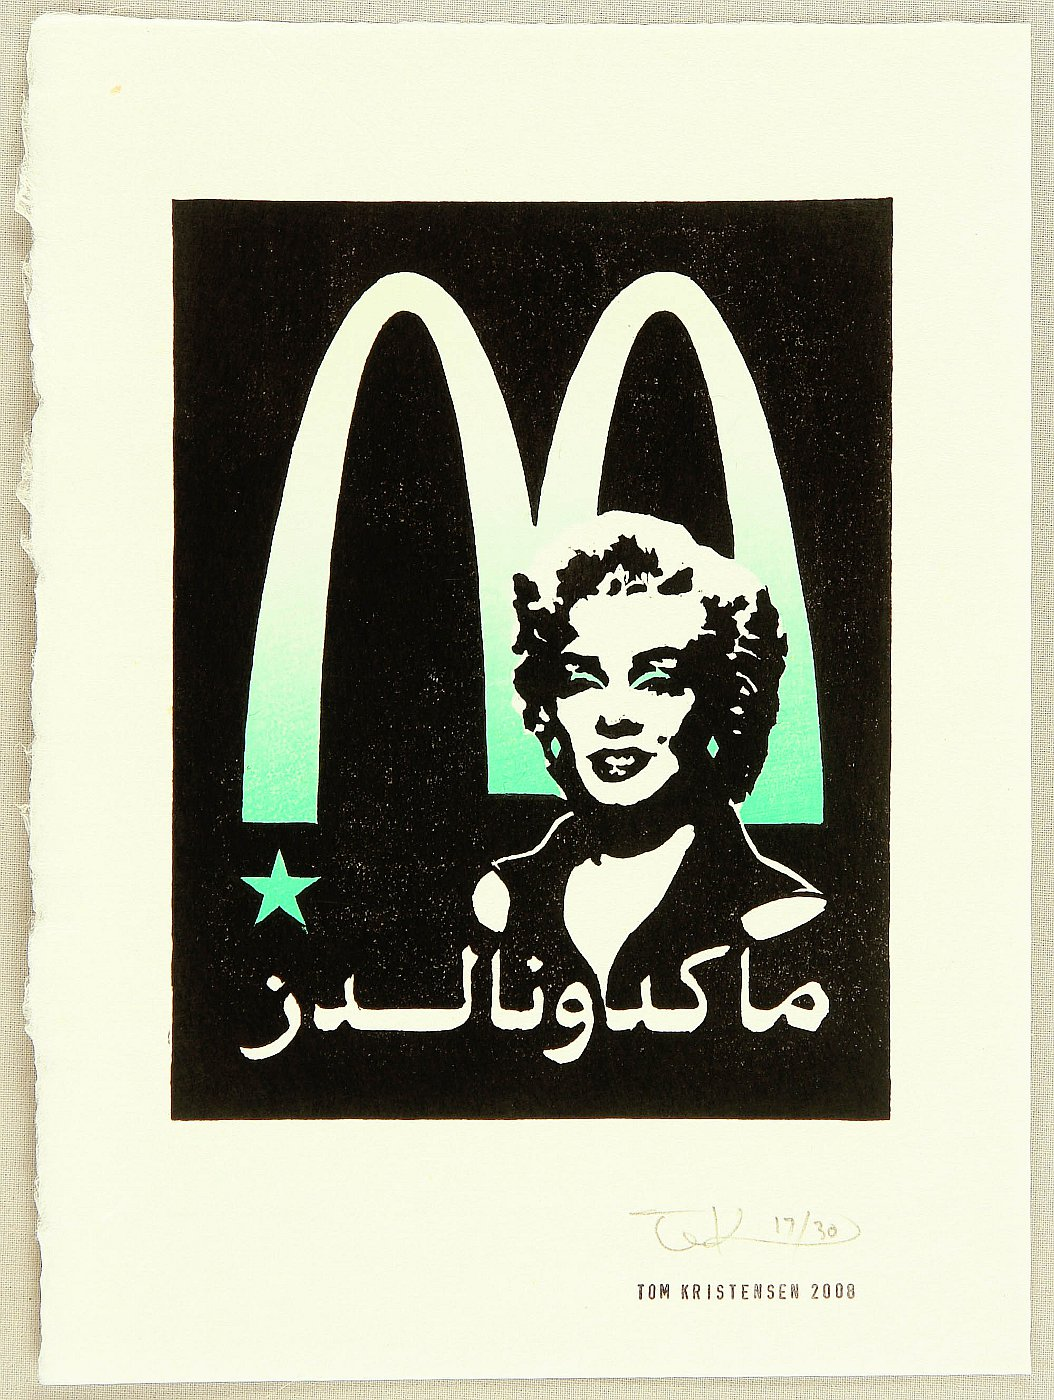 M is for Marilyn Monroe